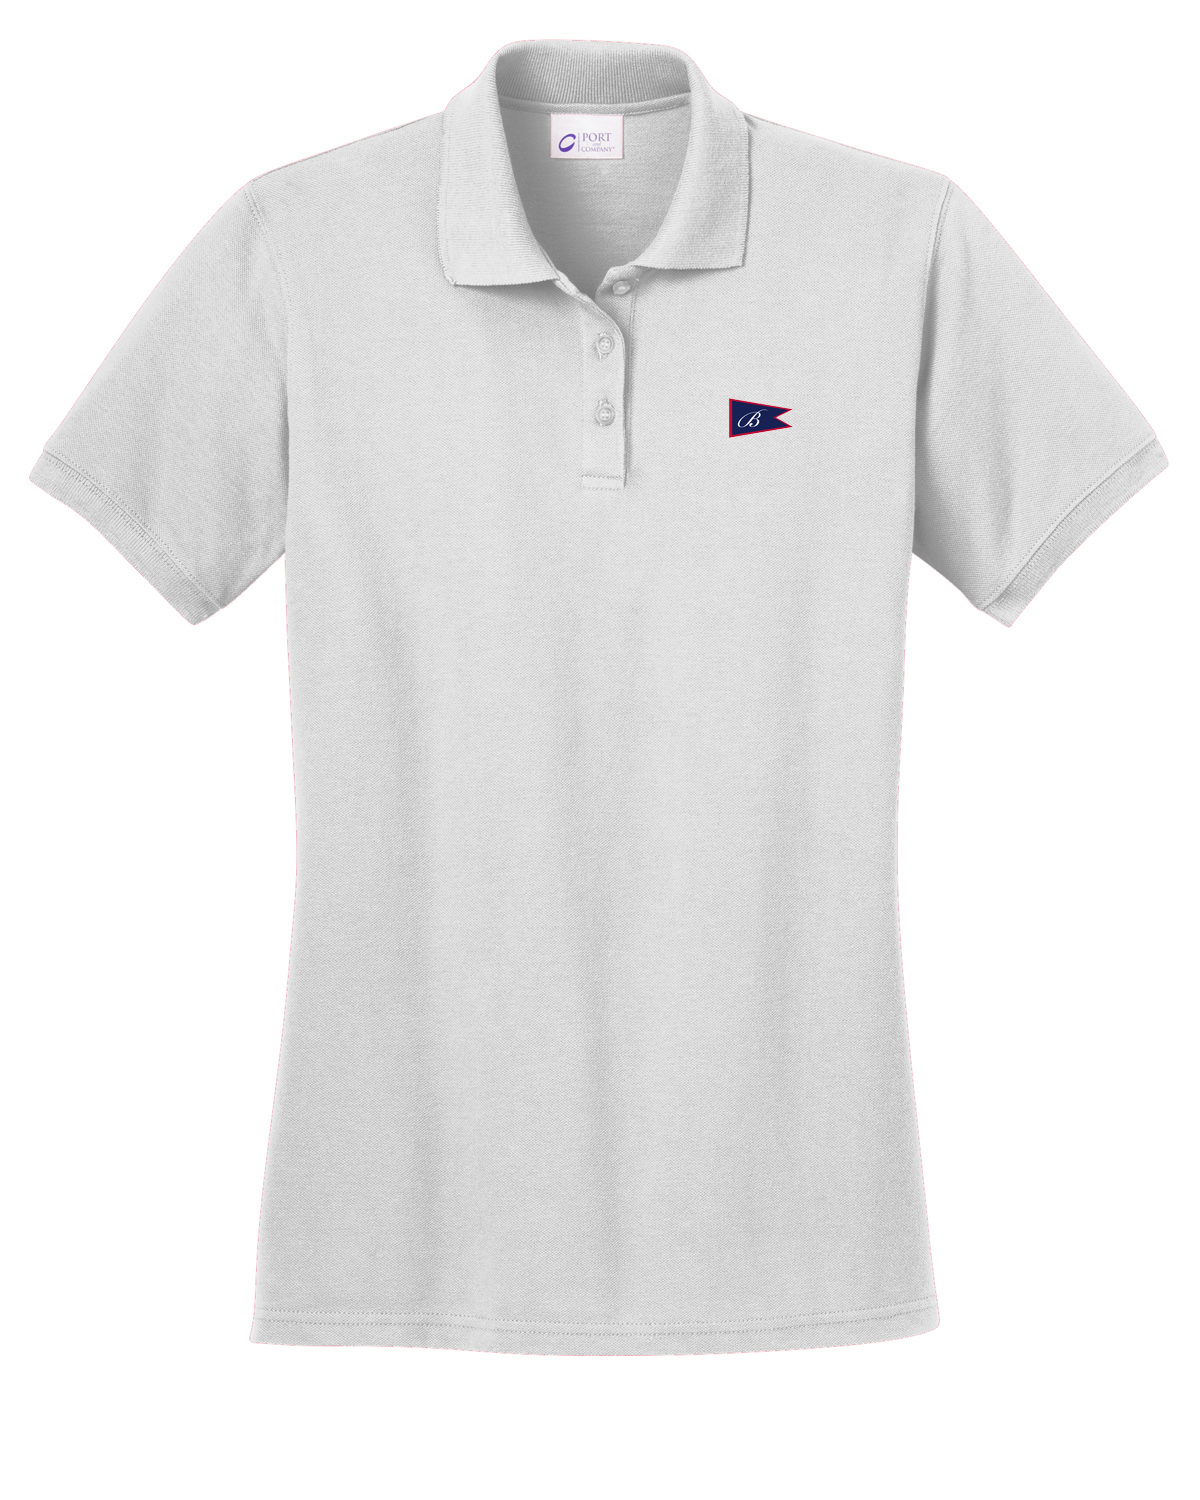 BOATHOUSE OF HARBOR SPRINGS WOMEN'S COTTON POLO